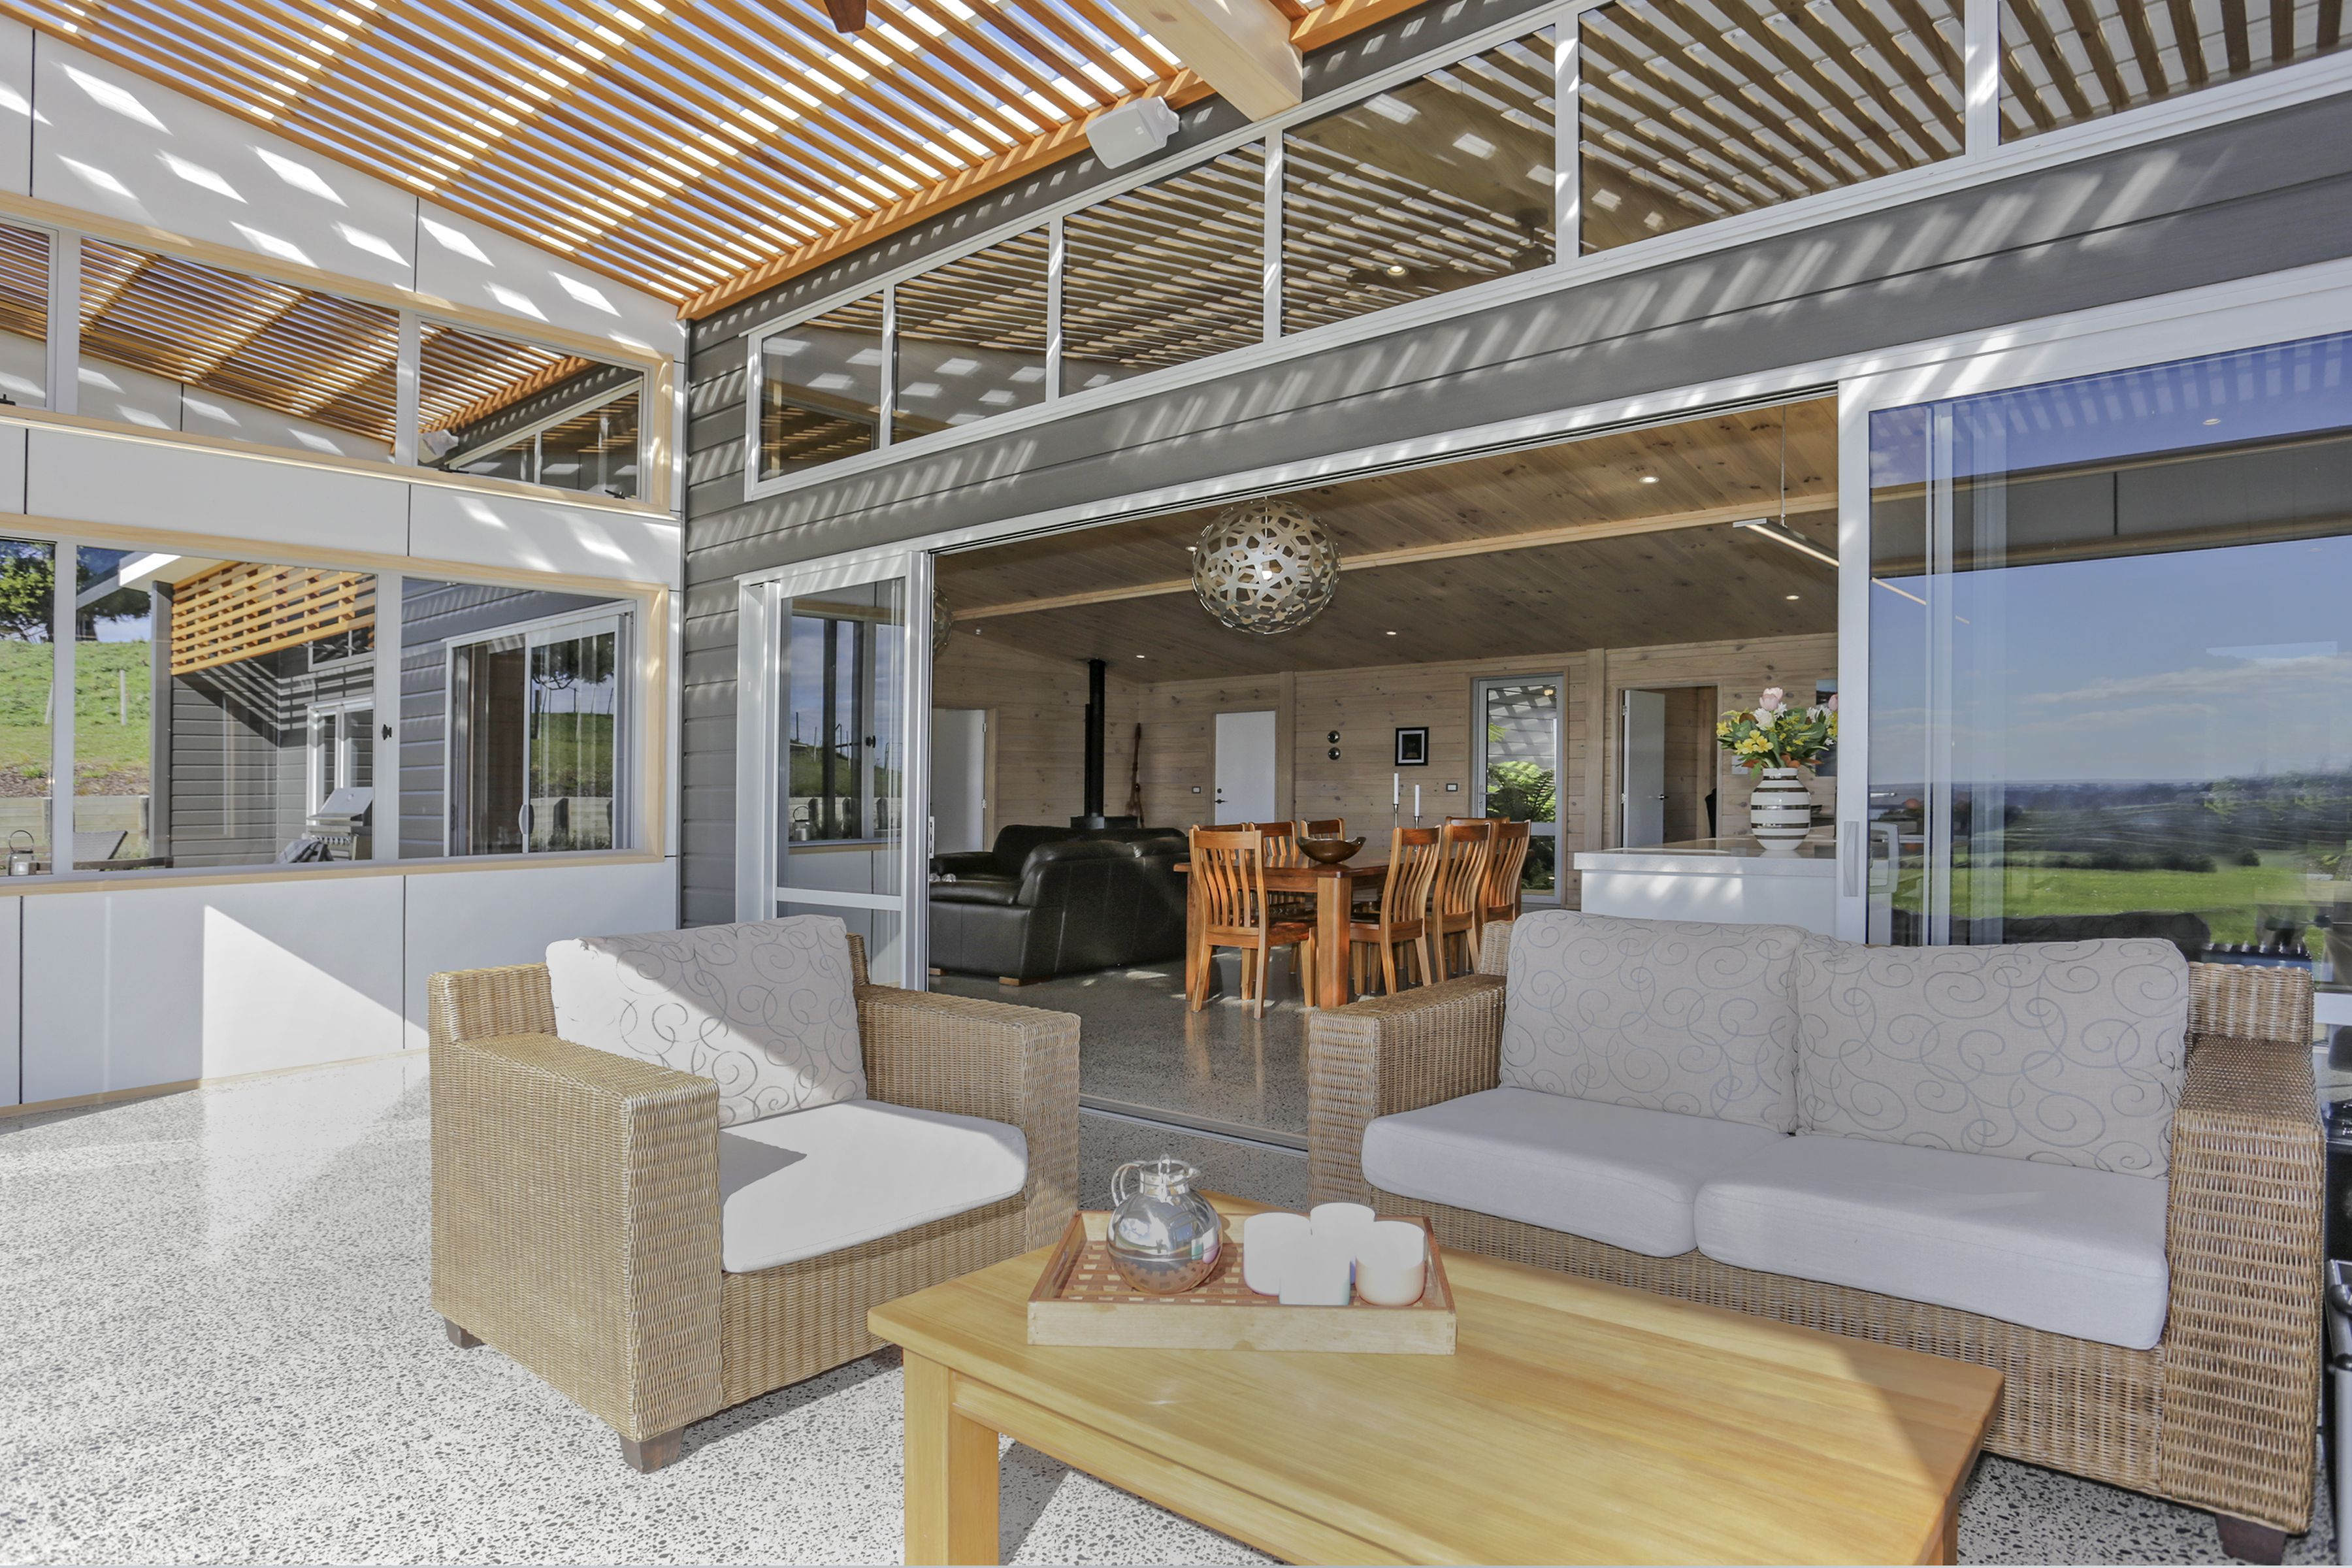 Indoor / outdoor living at its best! (With images) | New ... on Bespoke Outdoor Living id=57868